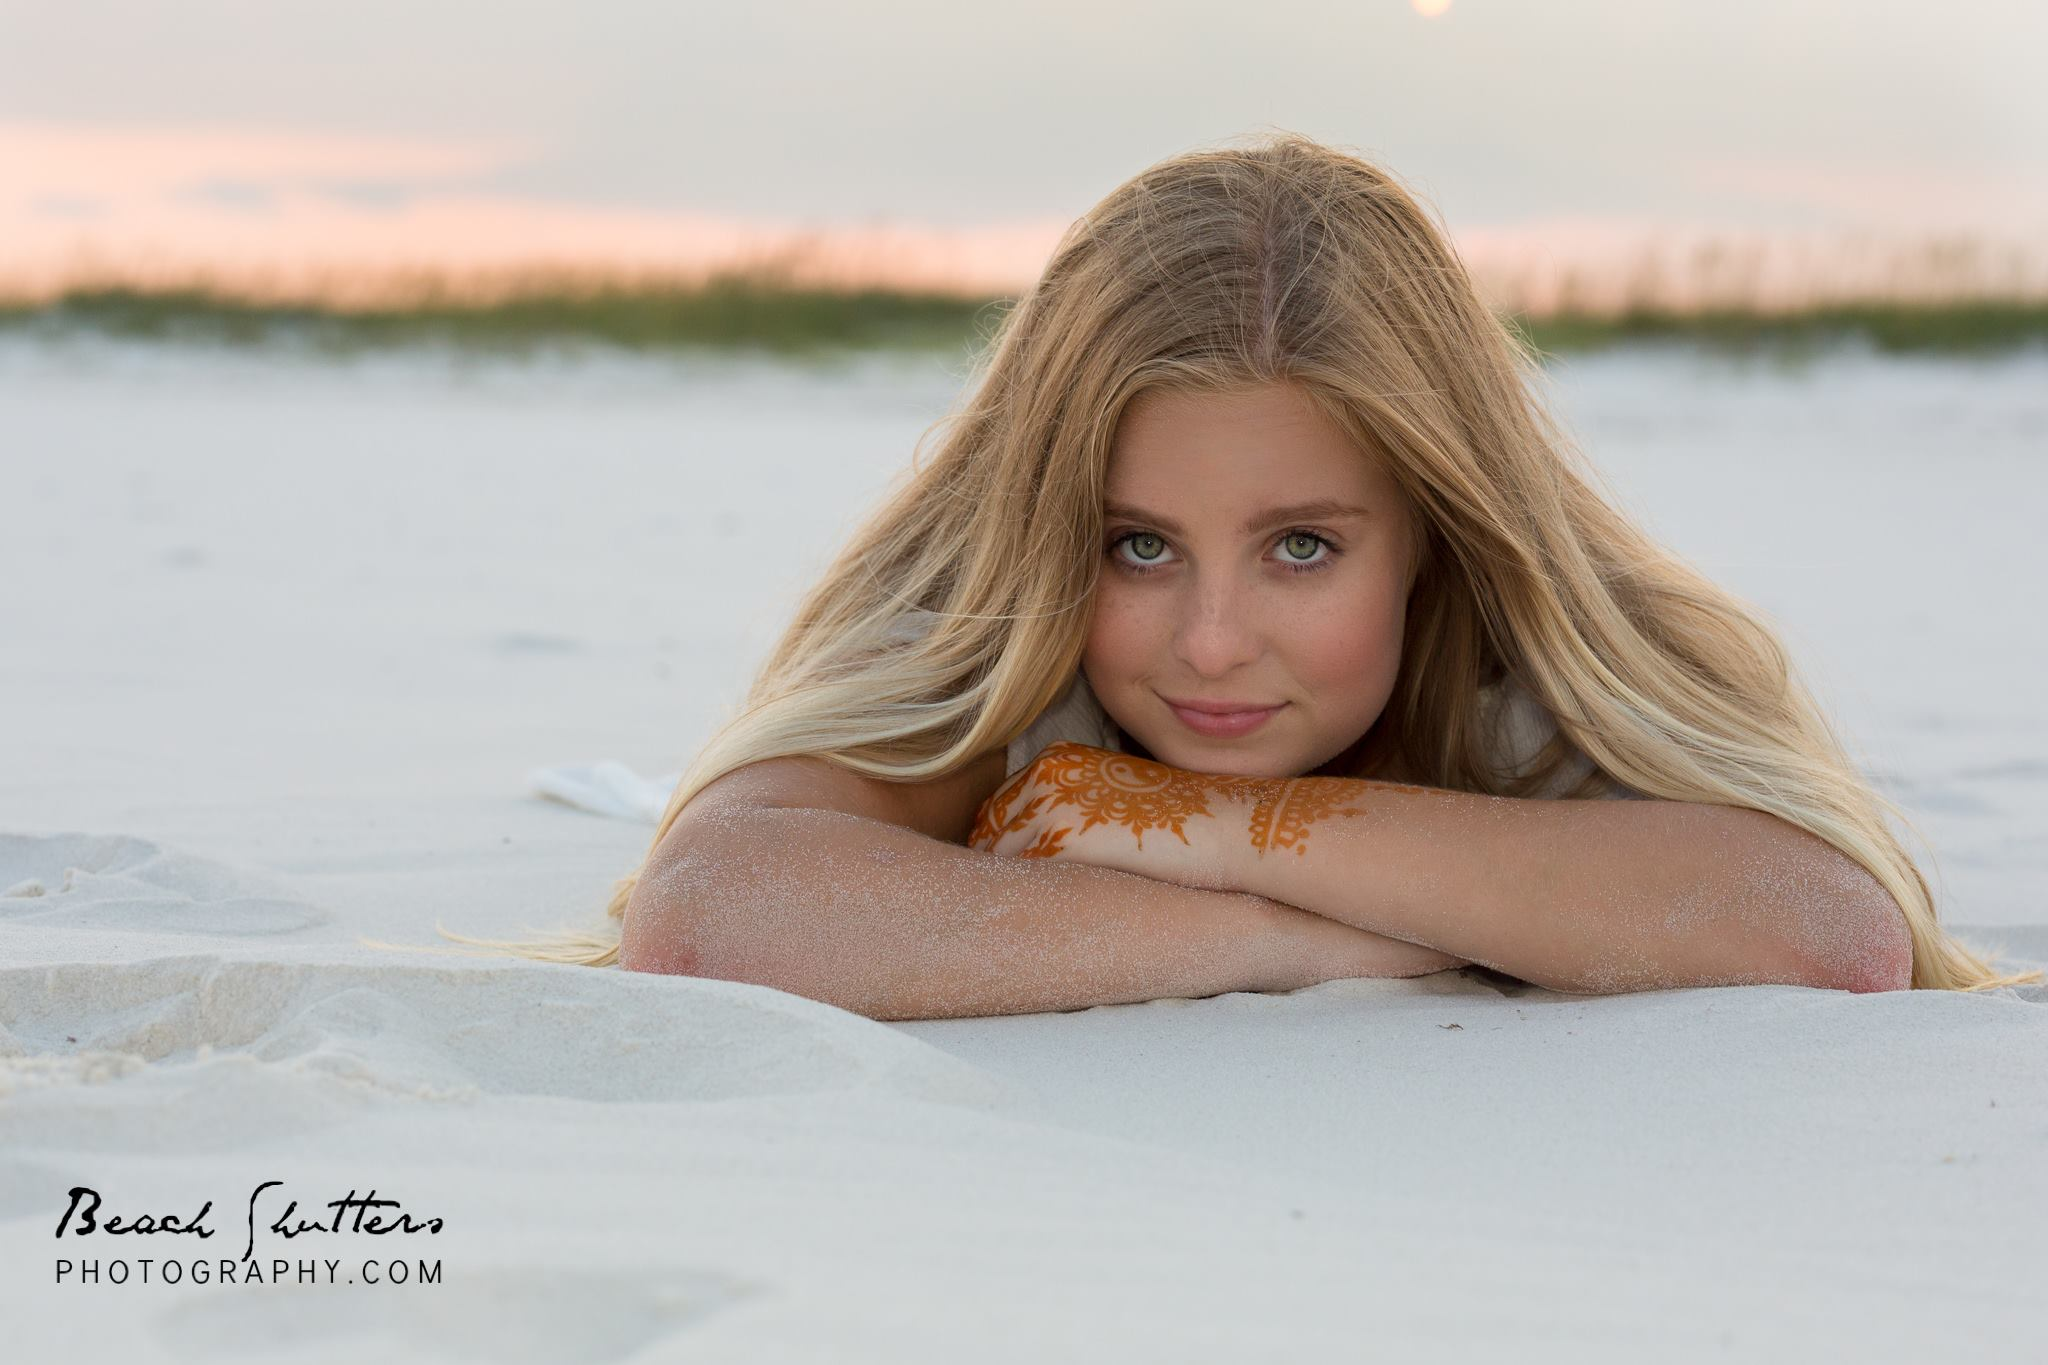 Senior portrait photographer in Orange Beach